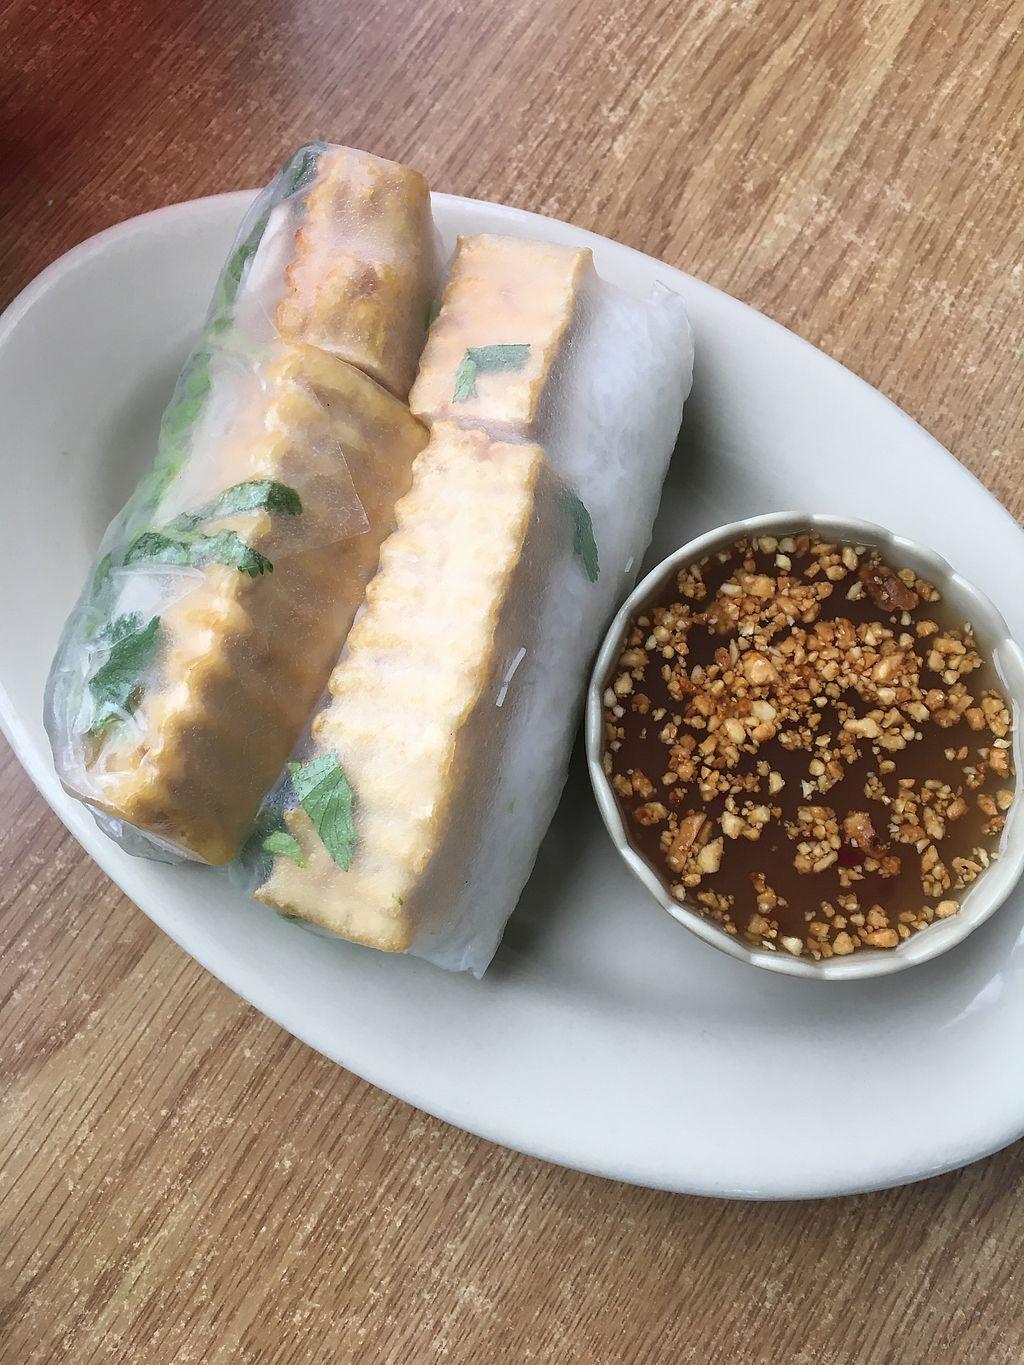 "Photo of Thai Thai Cafe   by <a href=""/members/profile/Traveling.Plant_Eater"">Traveling.Plant_Eater</a> <br/>Soft Spring Rolls with Tofu <br/> January 3, 2018  - <a href='/contact/abuse/image/77977/342614'>Report</a>"